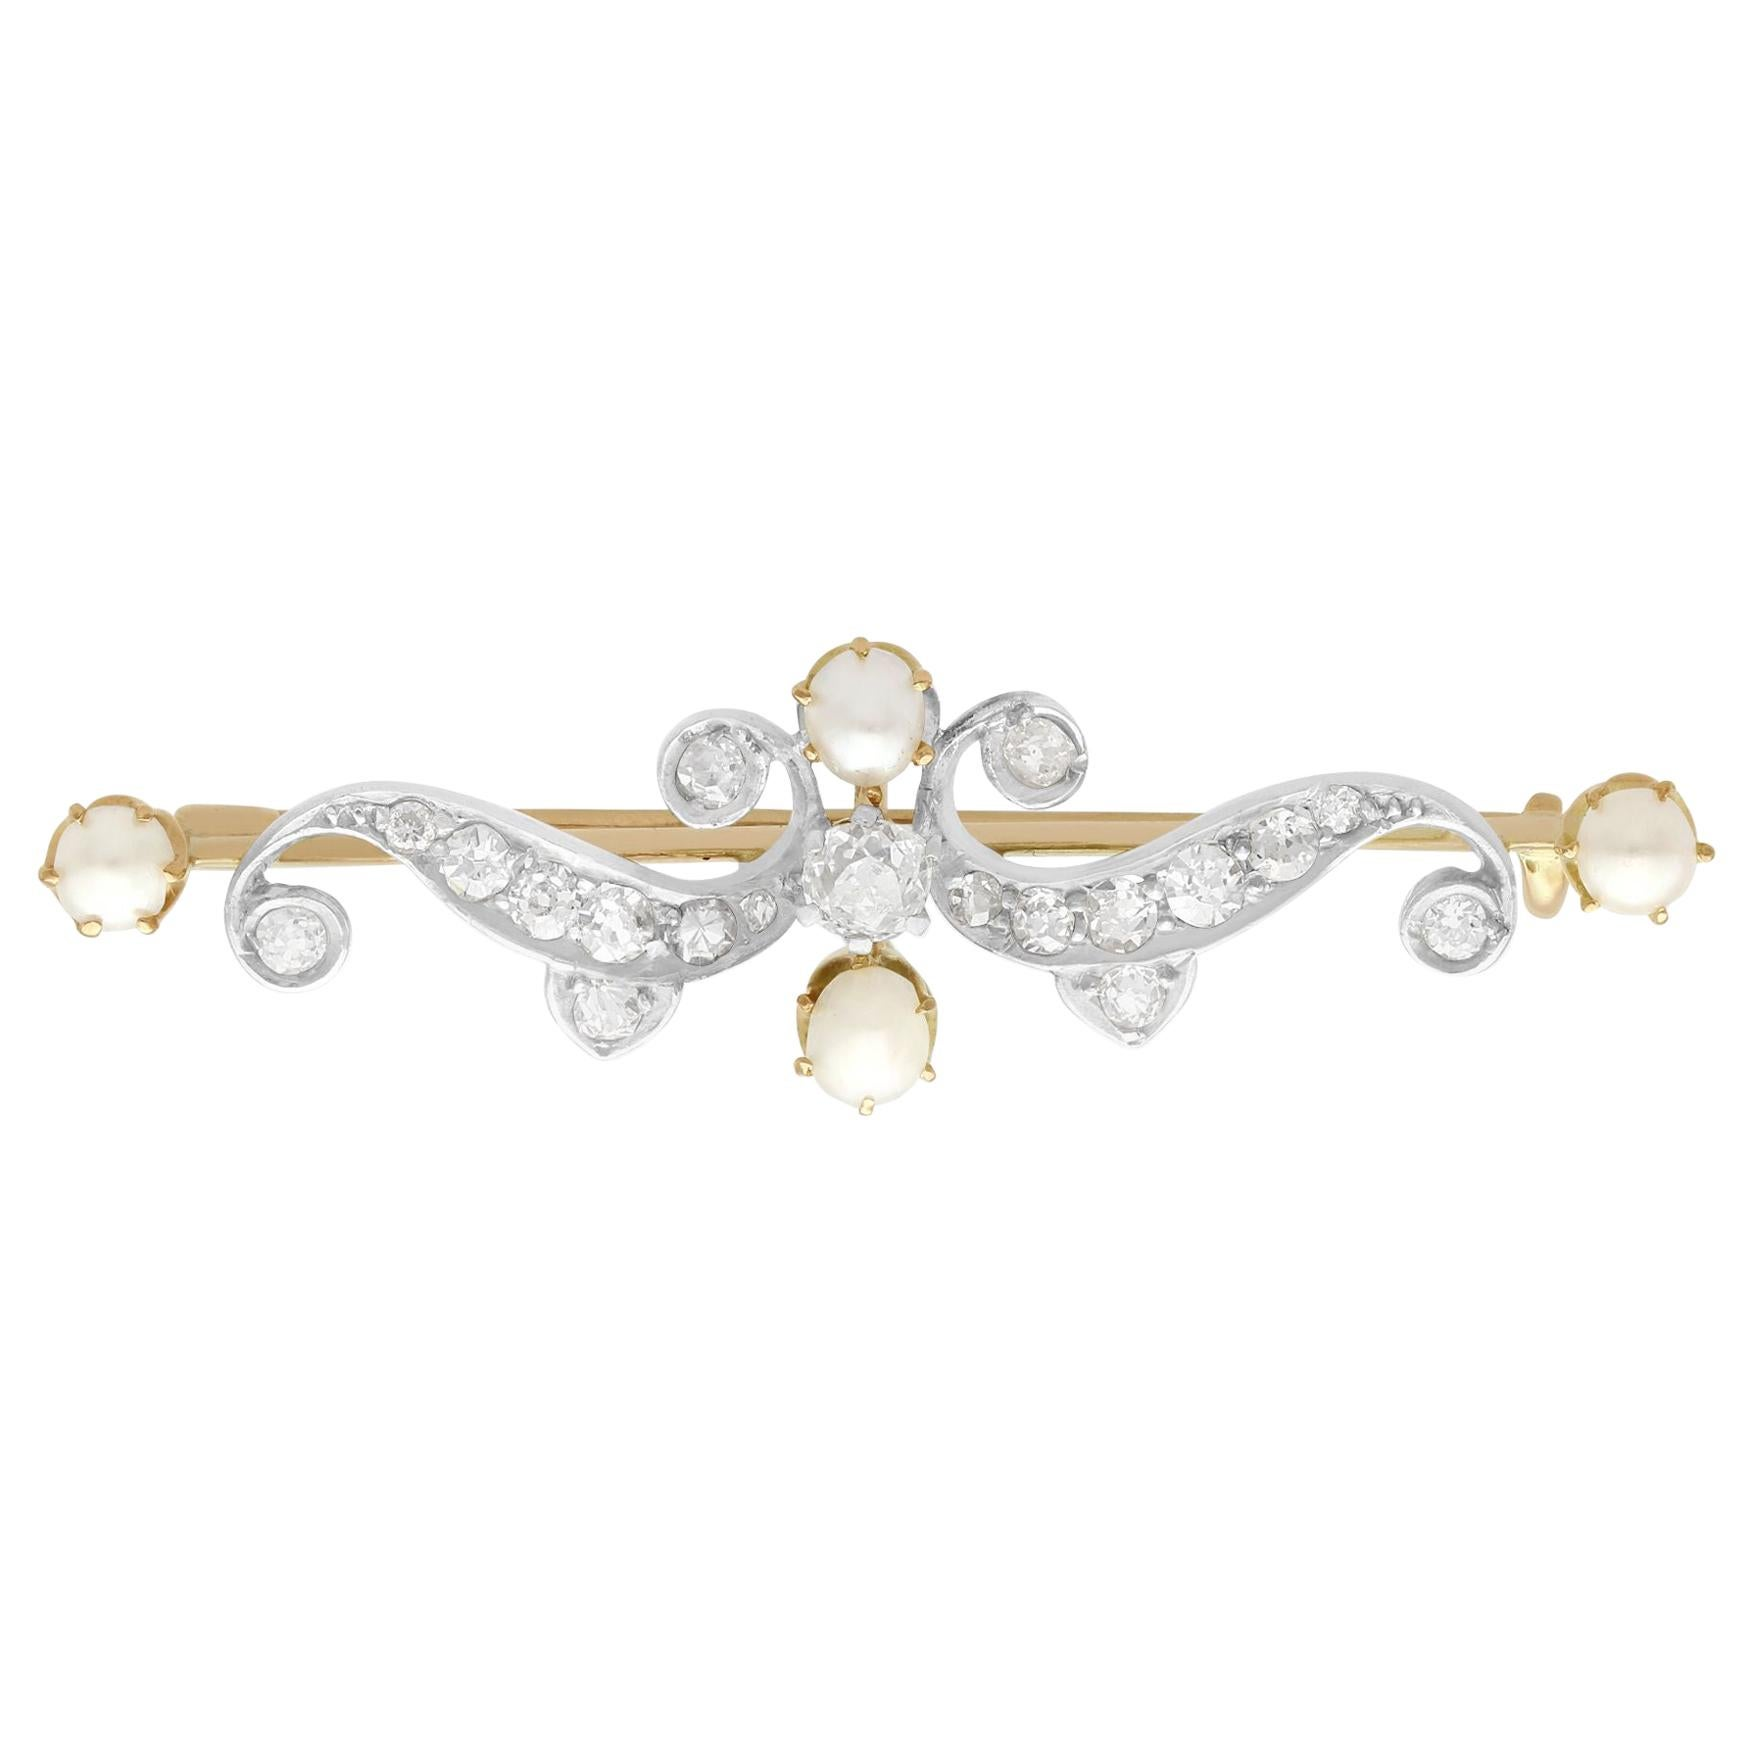 1890s Antique Diamond and Pearl Yellow Gold Brooch